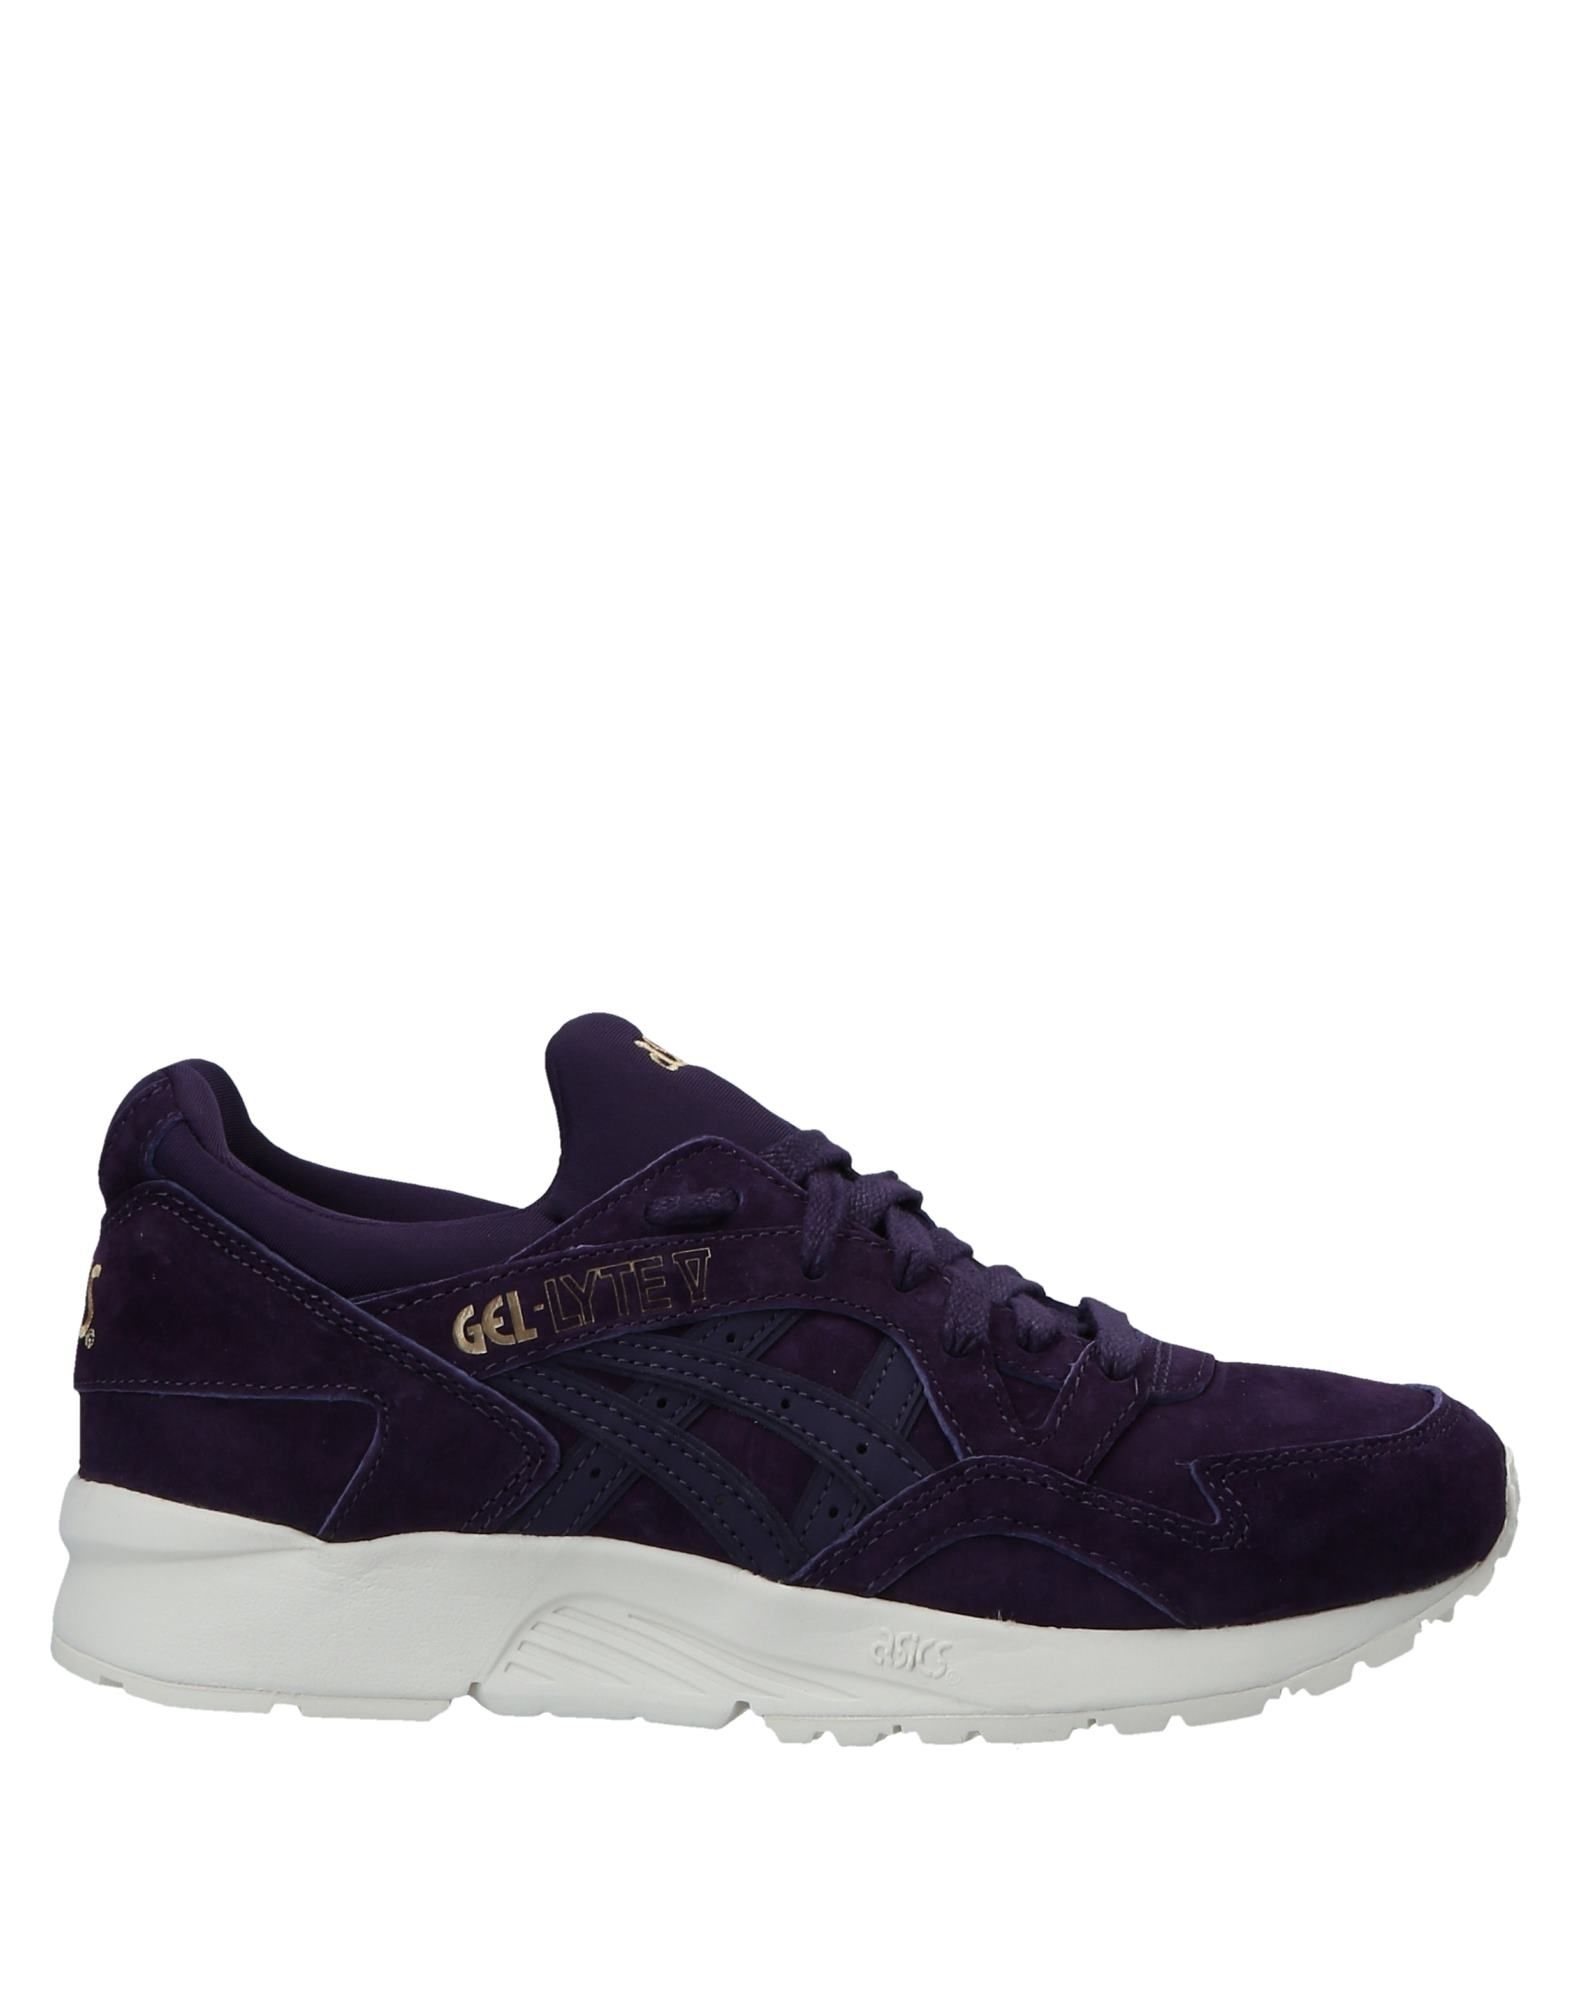 Asics  Sneakers - Women Asics Sneakers online on  Asics United Kingdom - 11552692JN 7de992